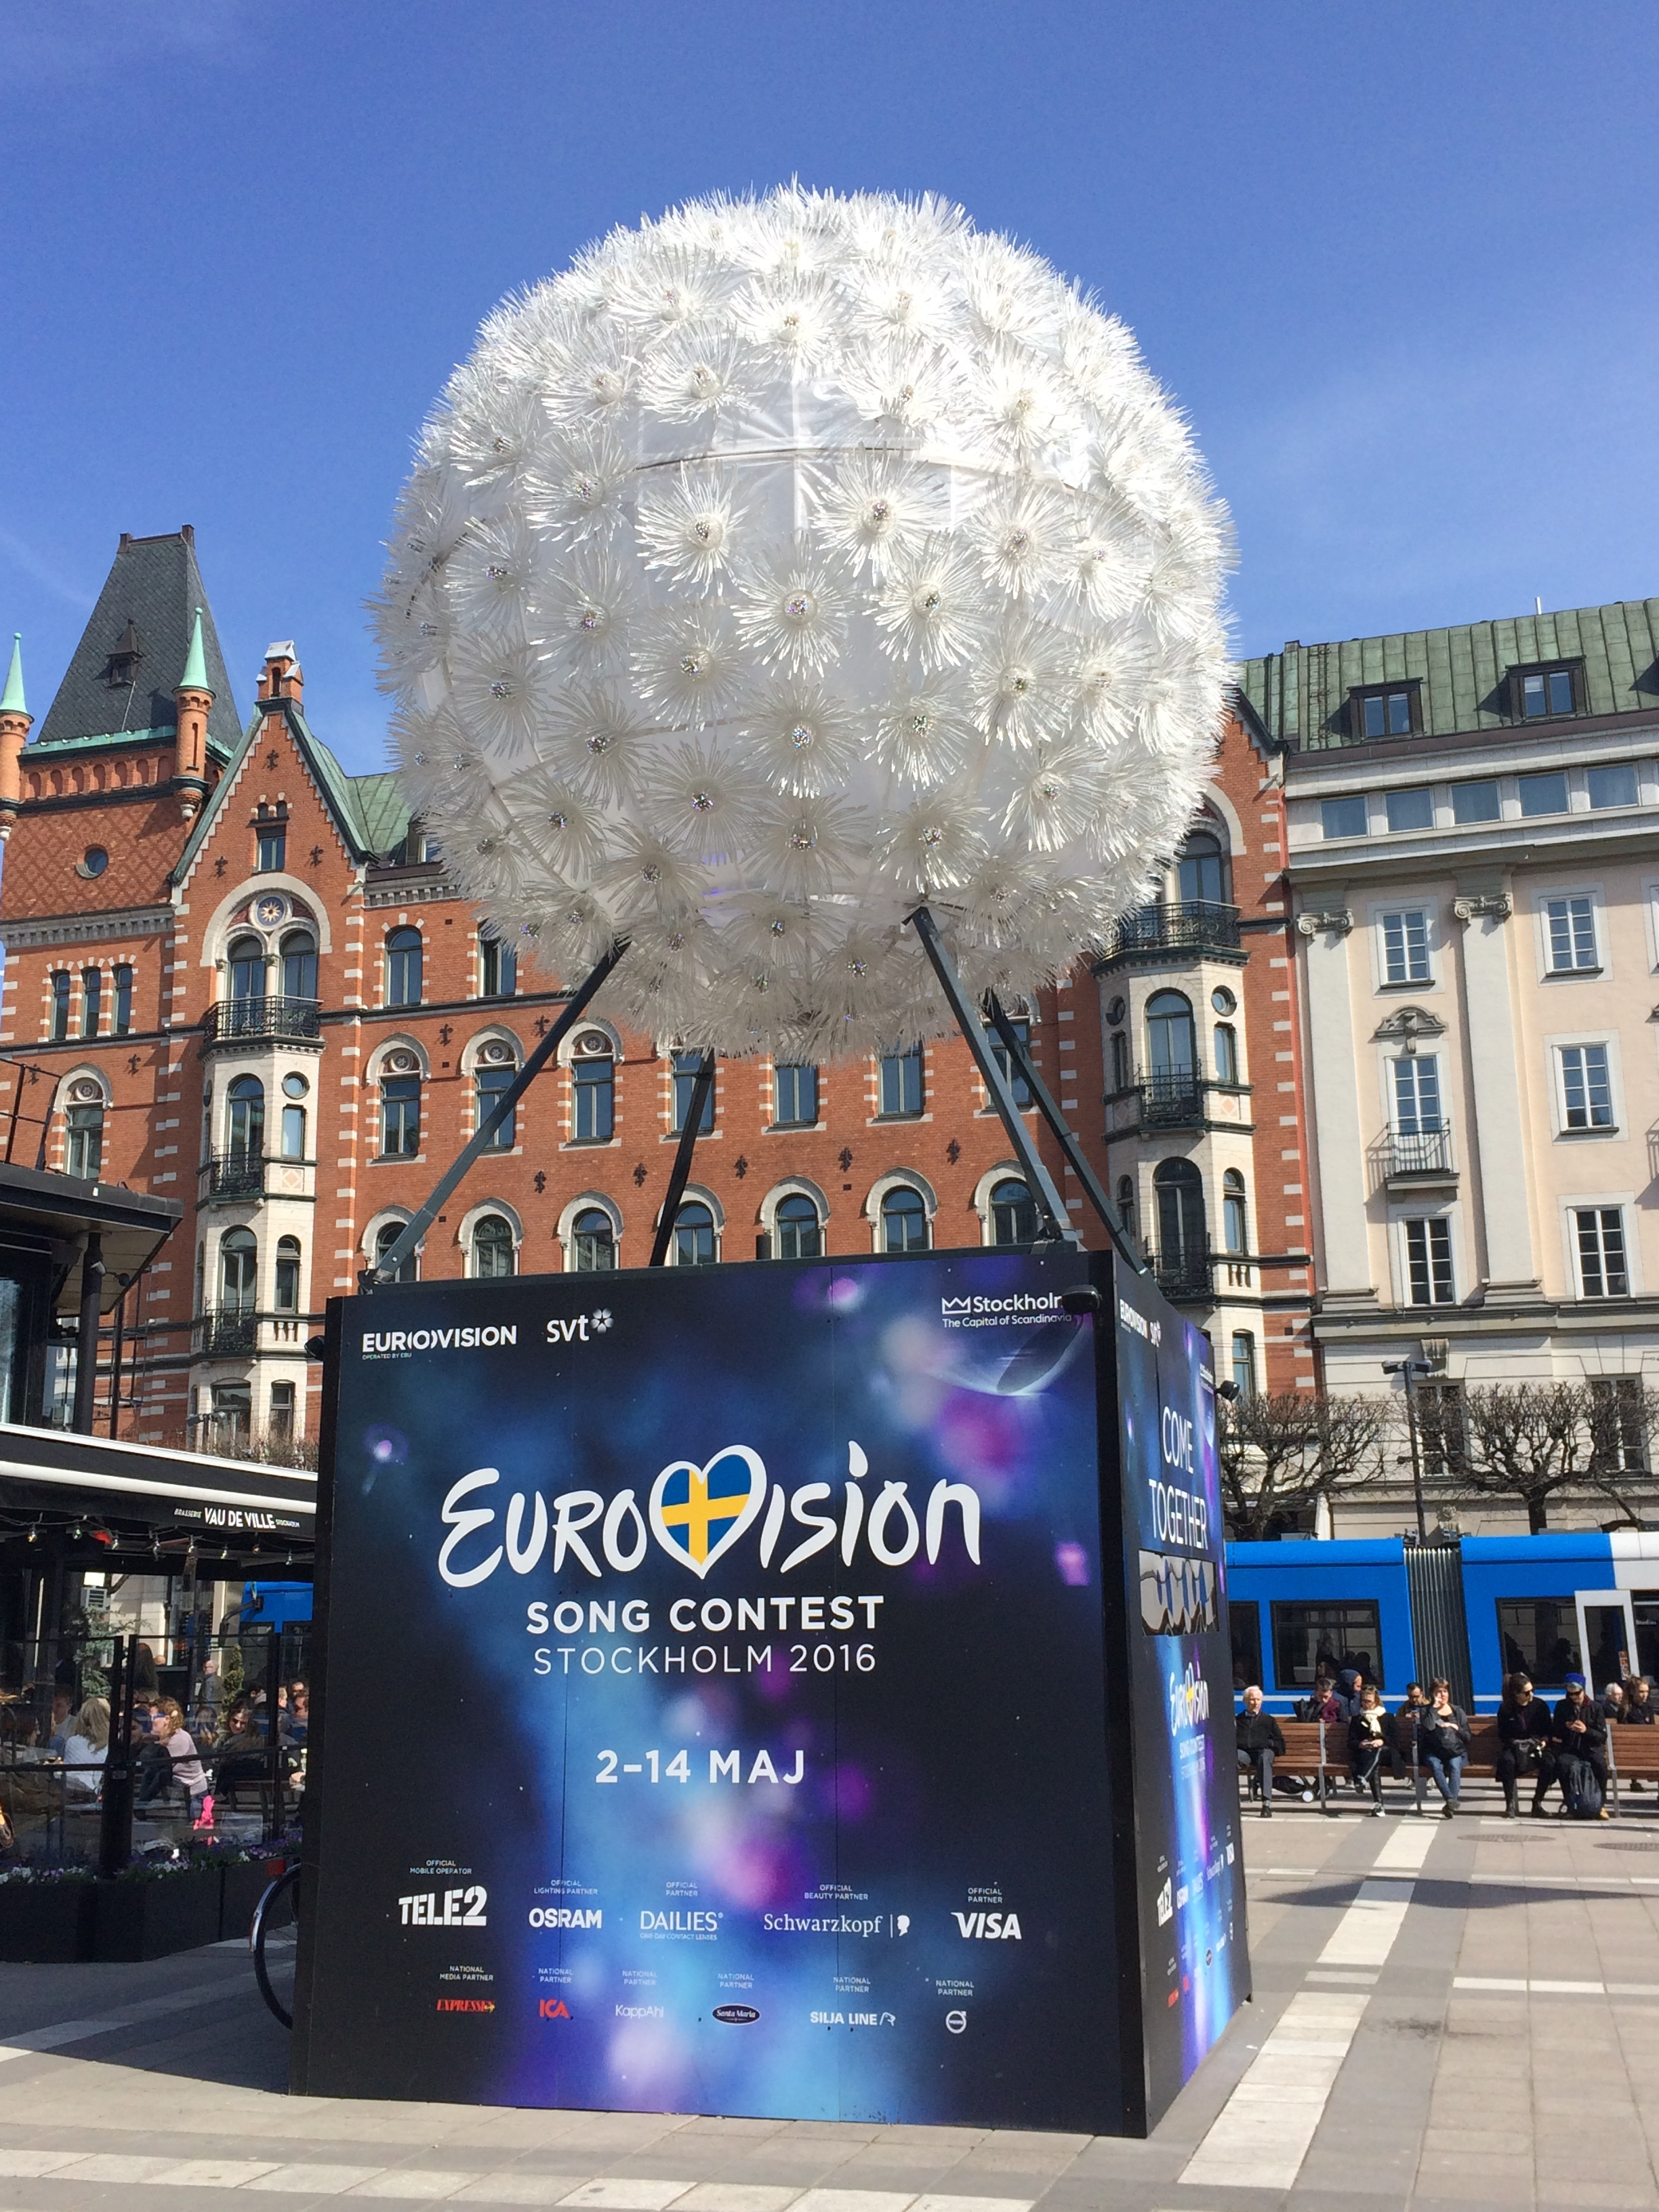 Eurovision advertising in the city